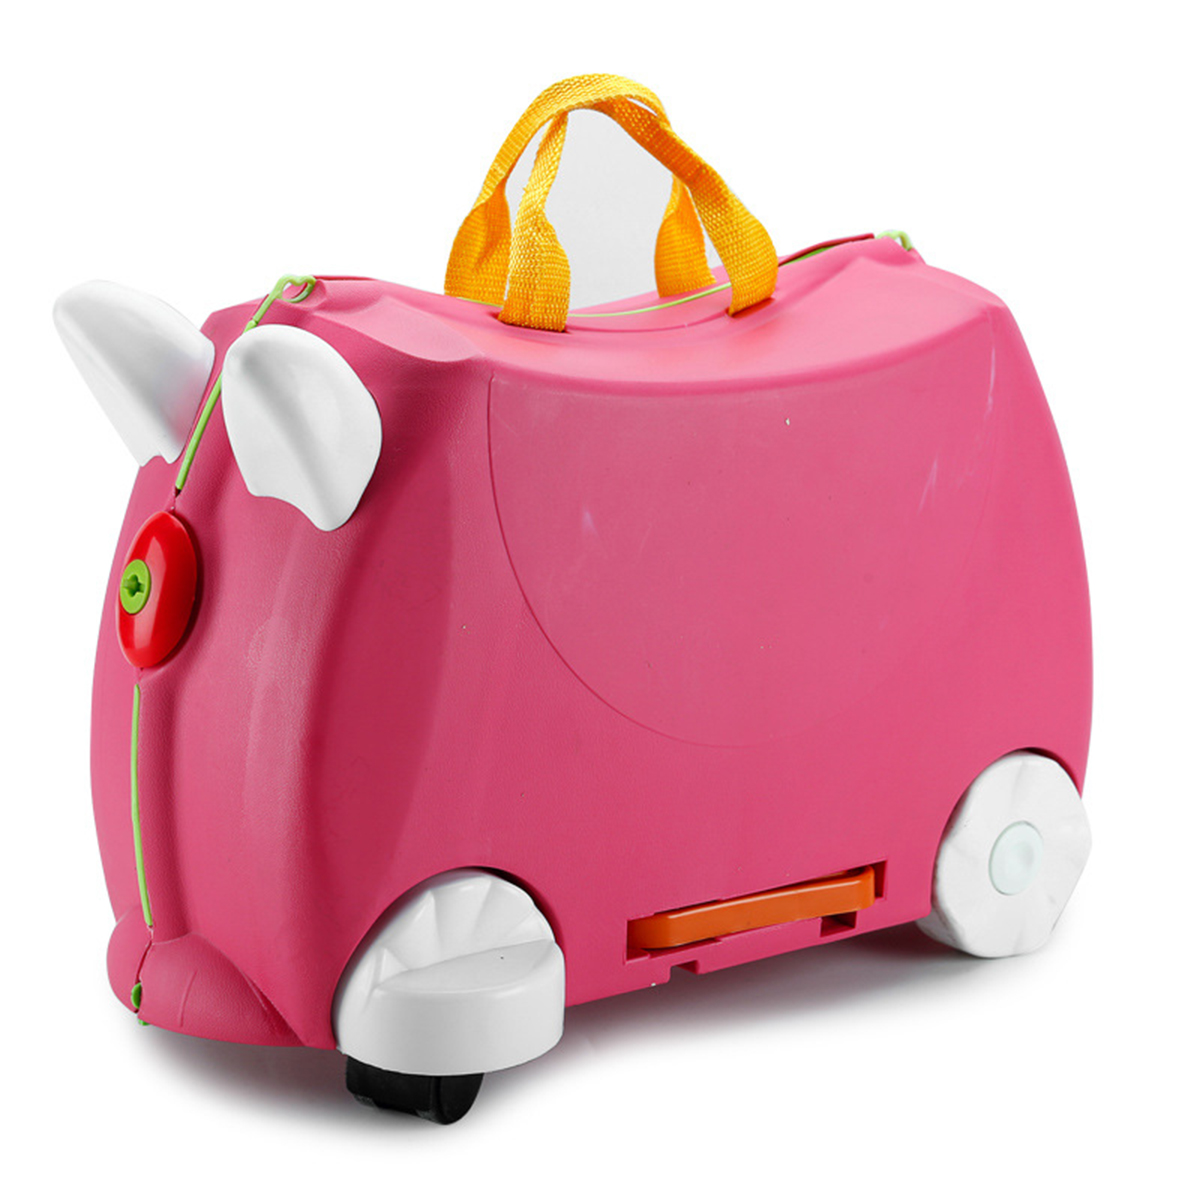 Carnival Toy Box Pink: Ride On Suitcase Toy Box Kids Children Travel Luggage